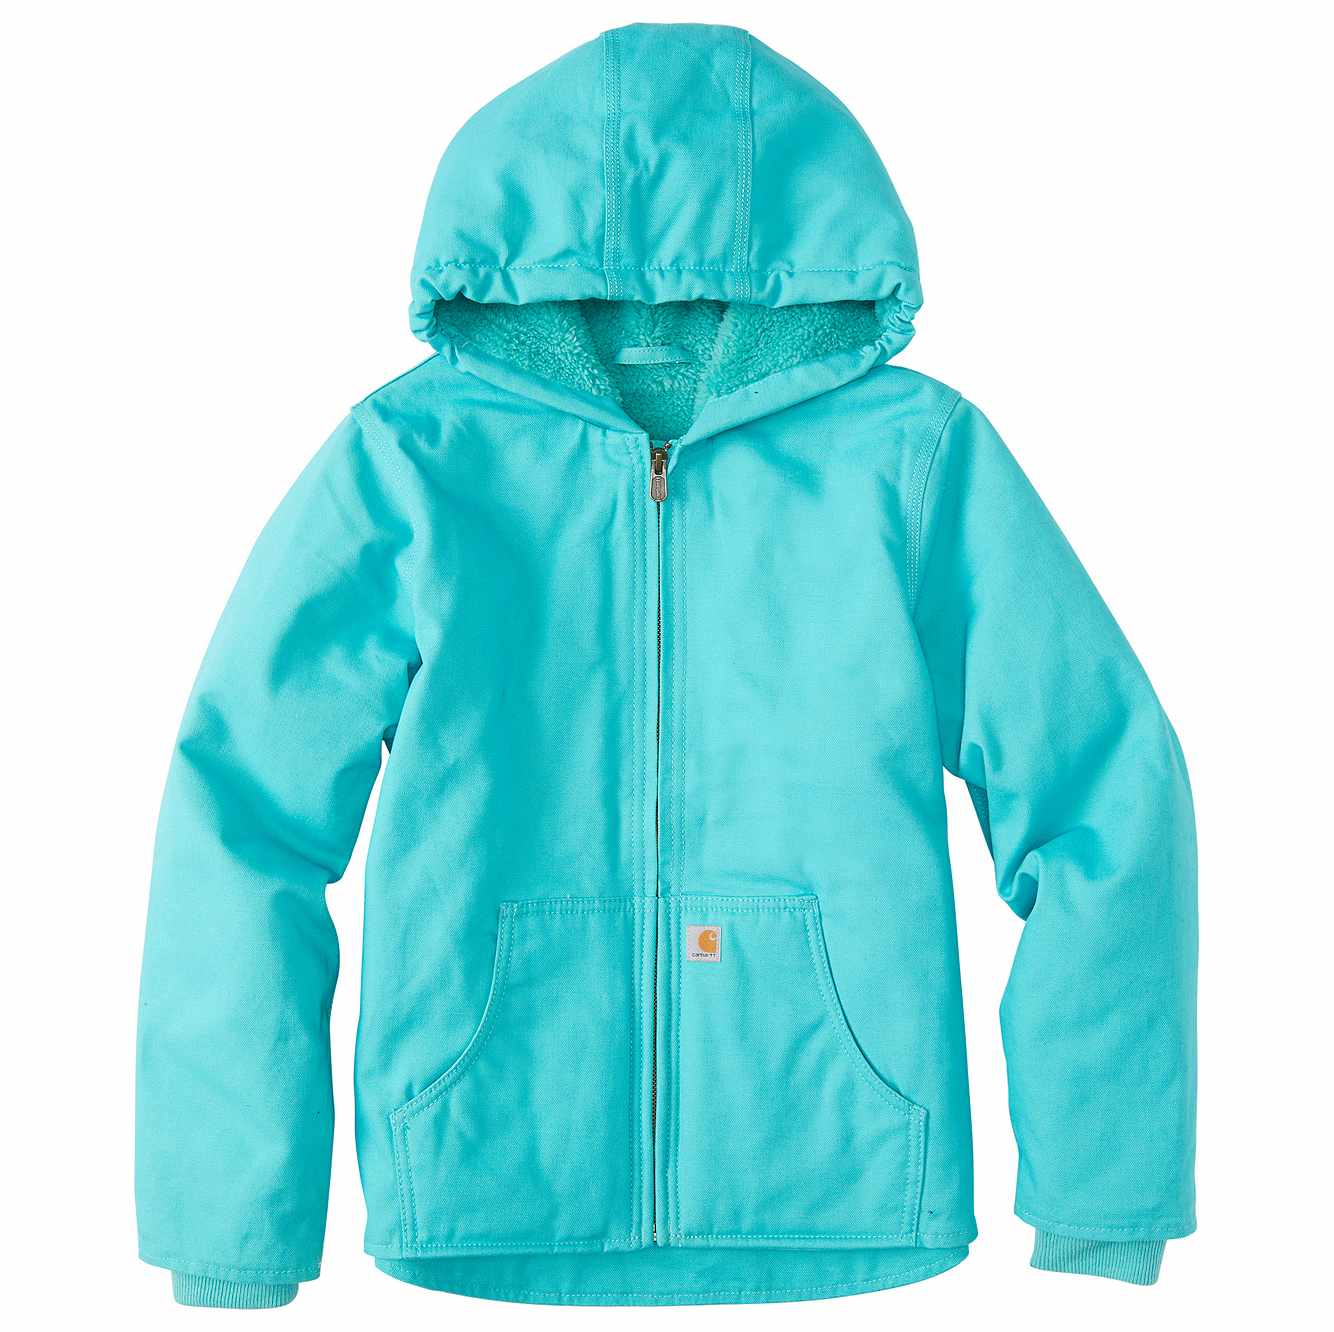 Picture of Redwood Jacket Sherpa Lined in Blue Turquoise